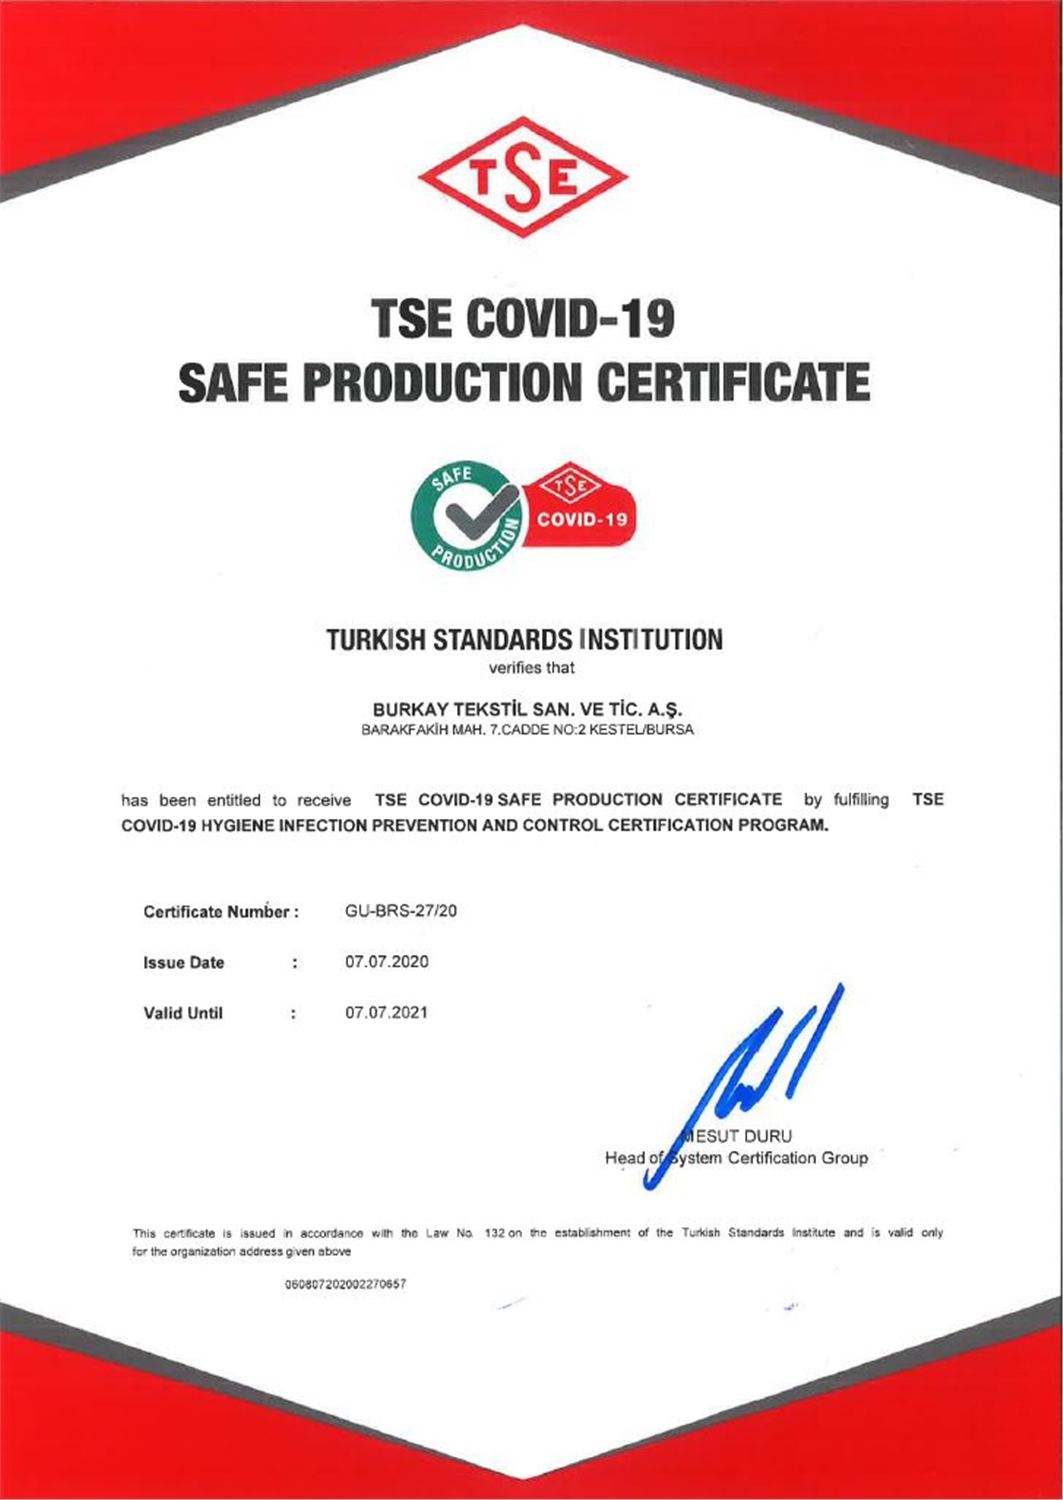 BURKAY TEXTILE HAS RECEIVED TSE COVID-19 HYGIENE INFECTION PREVENTION AND CONTROL CERTIFICATE.